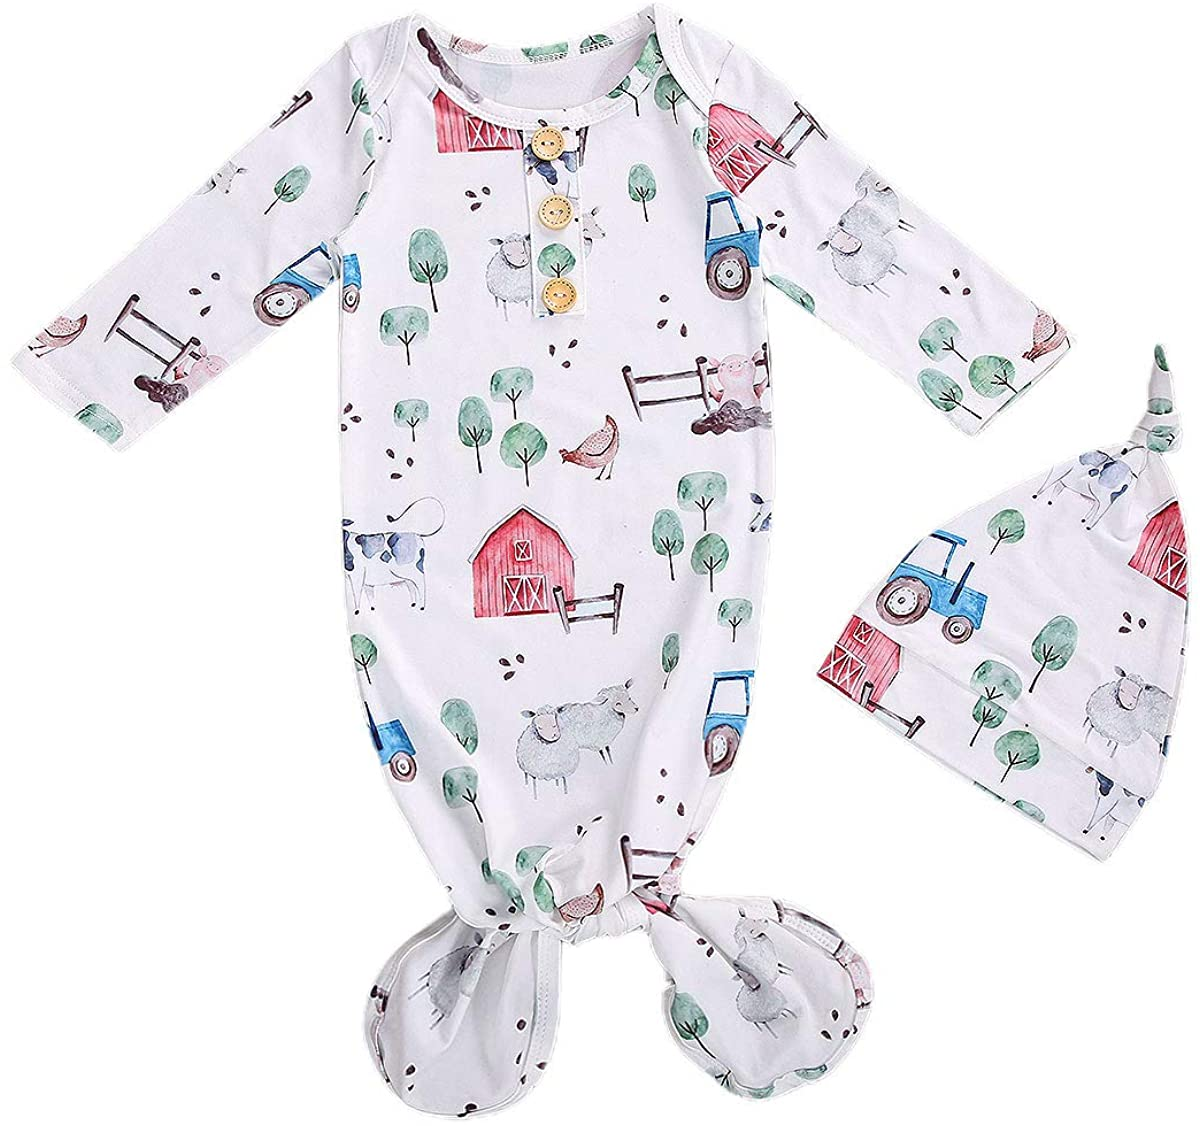 Newborn Baby Nightgown Coming Home Outfits Long Sleeve Sleeping Bags Pajama Set Swaddle Blanket Sleepwear